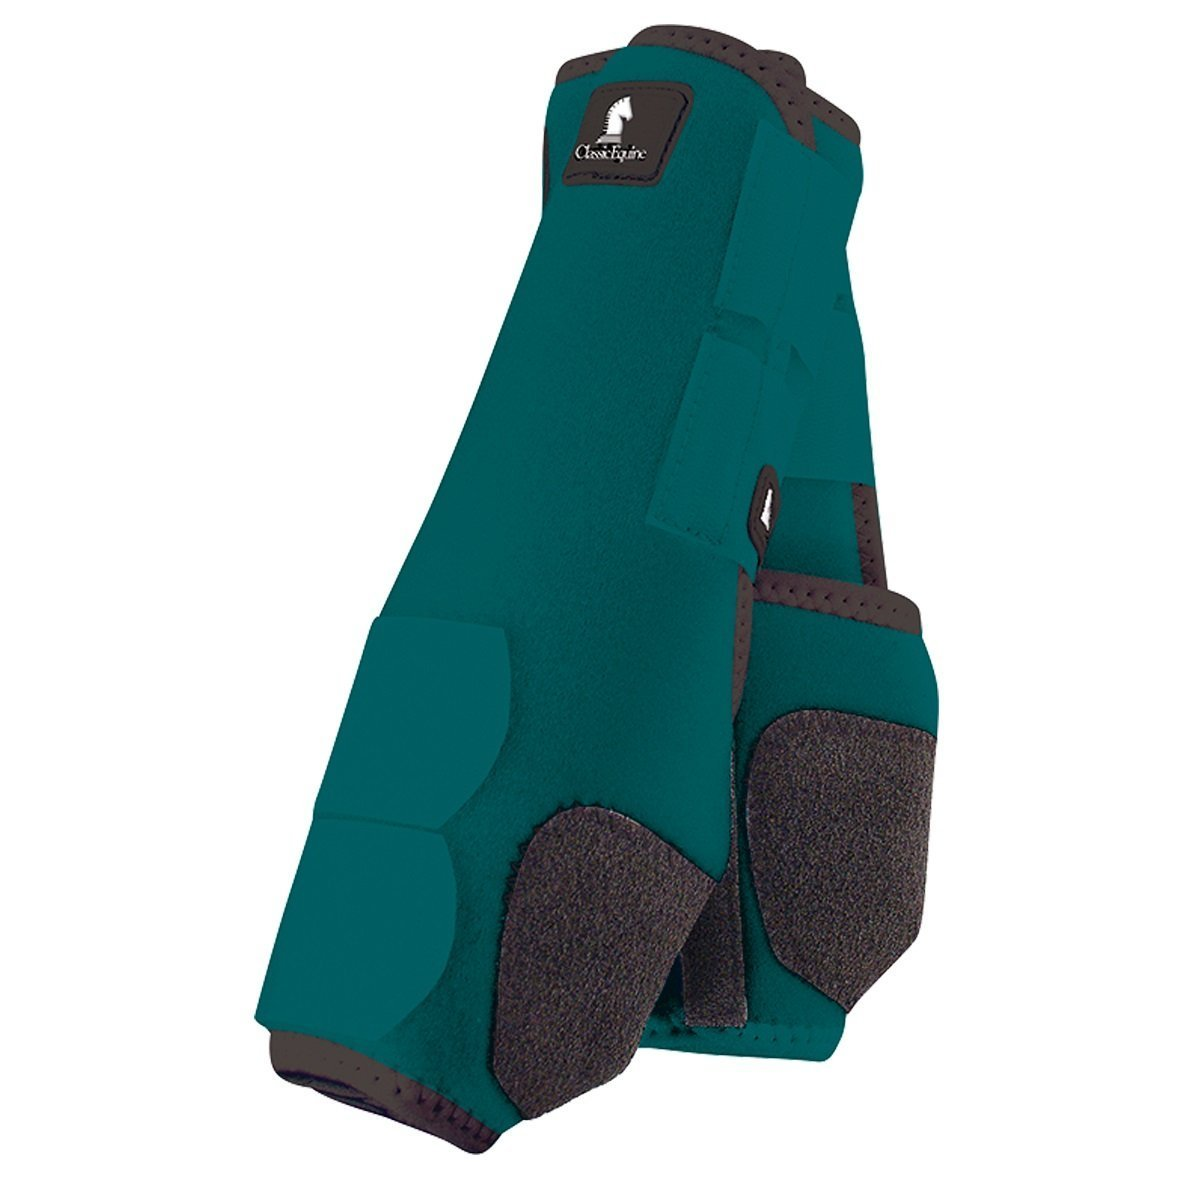 Classic Equine Legacy SMB Boots - HIND Colors (Teal, Medium) by Classic